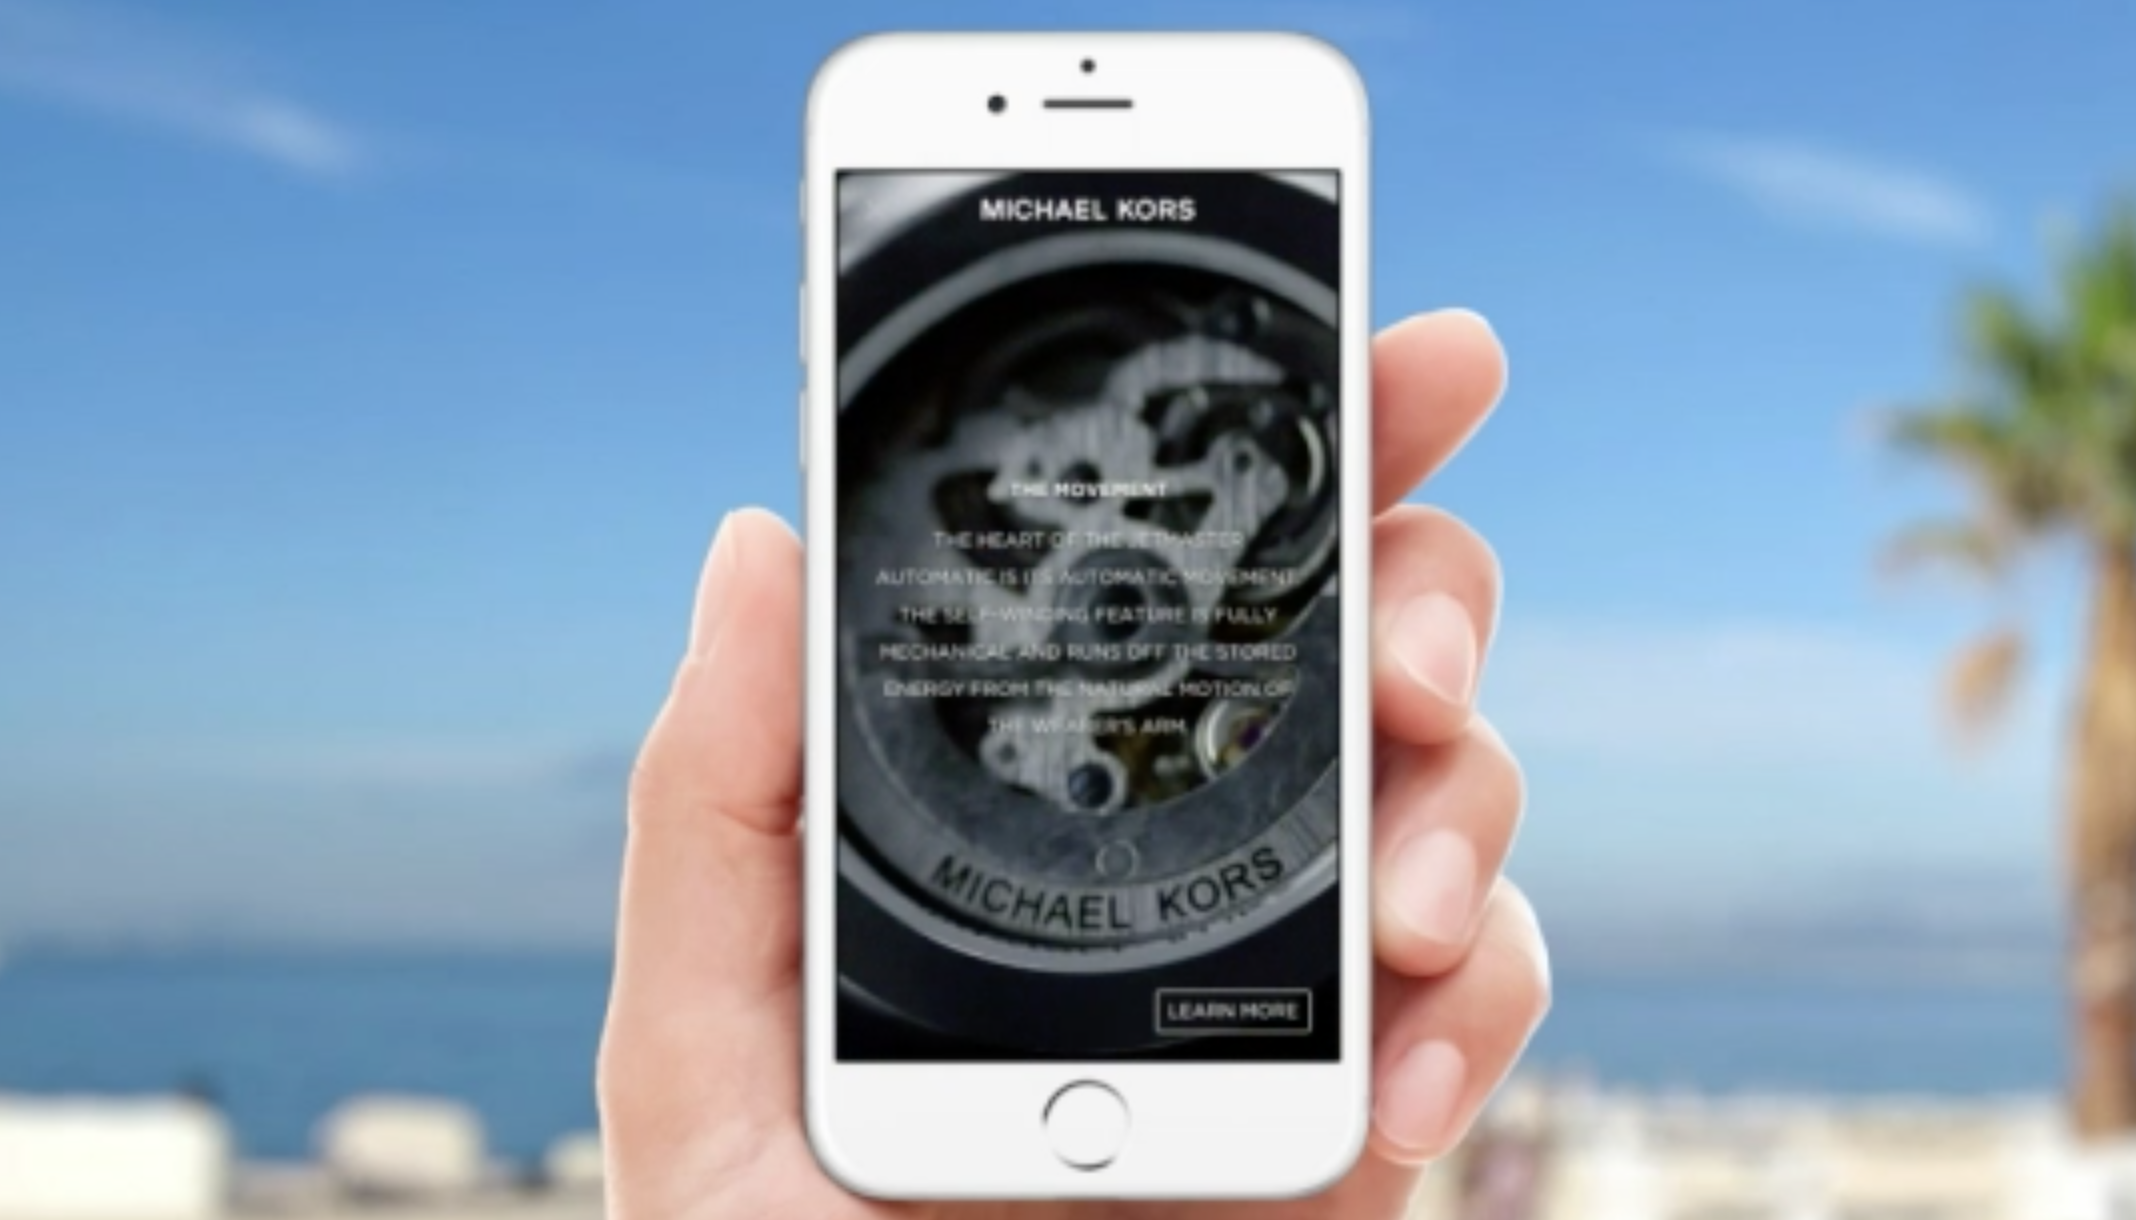 facebook s concept for mobile ads uses rich imagery and 360 degree views